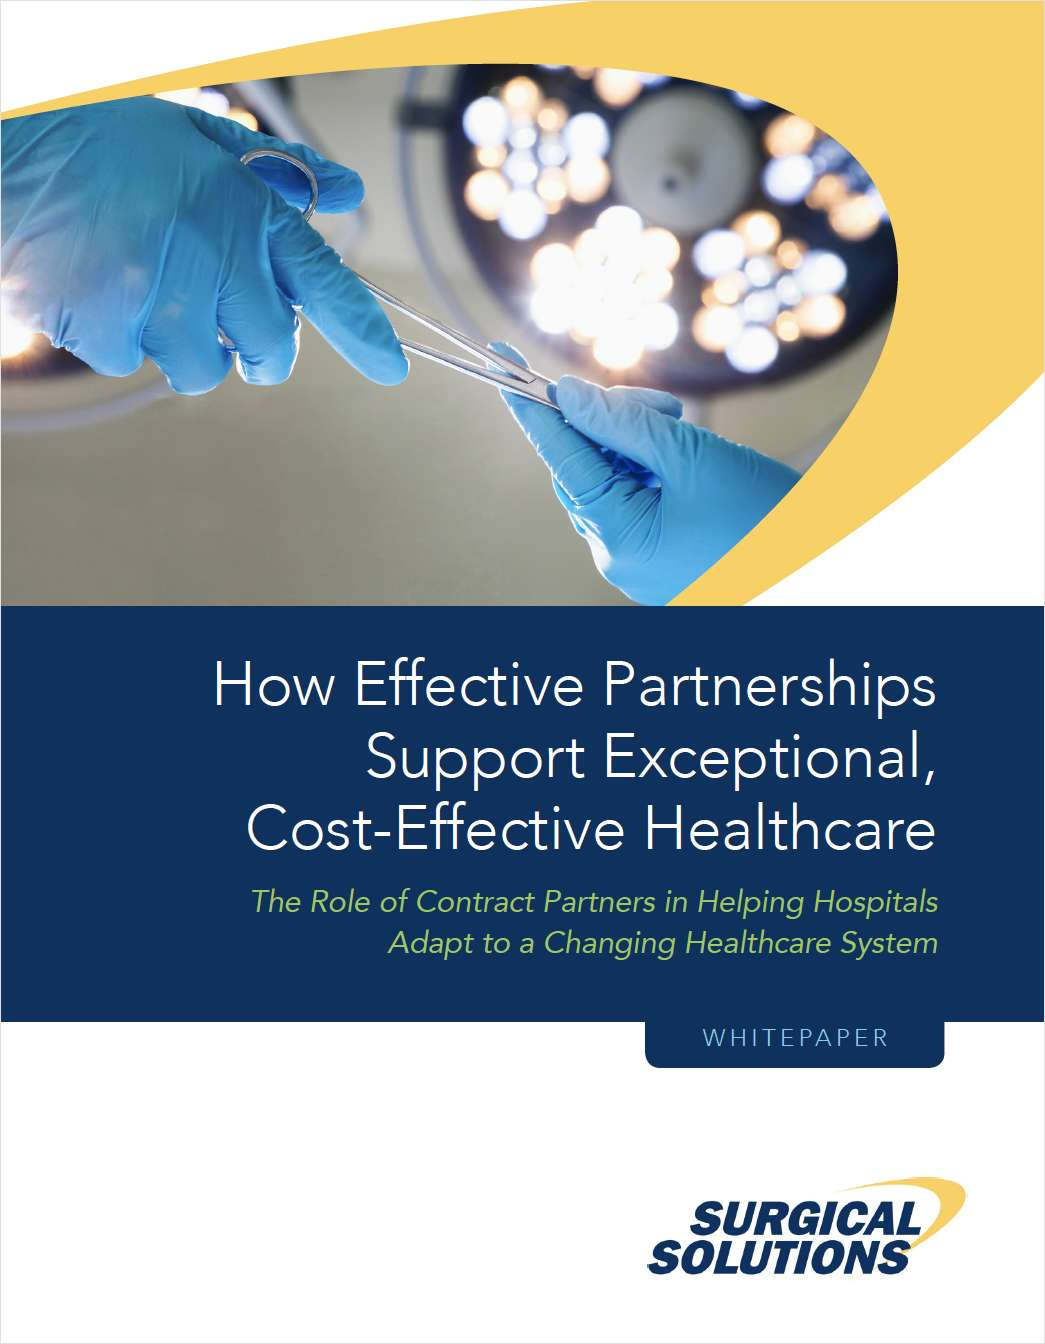 How Effective Partnerships Support Exceptional, Cost-Effective Healthcare